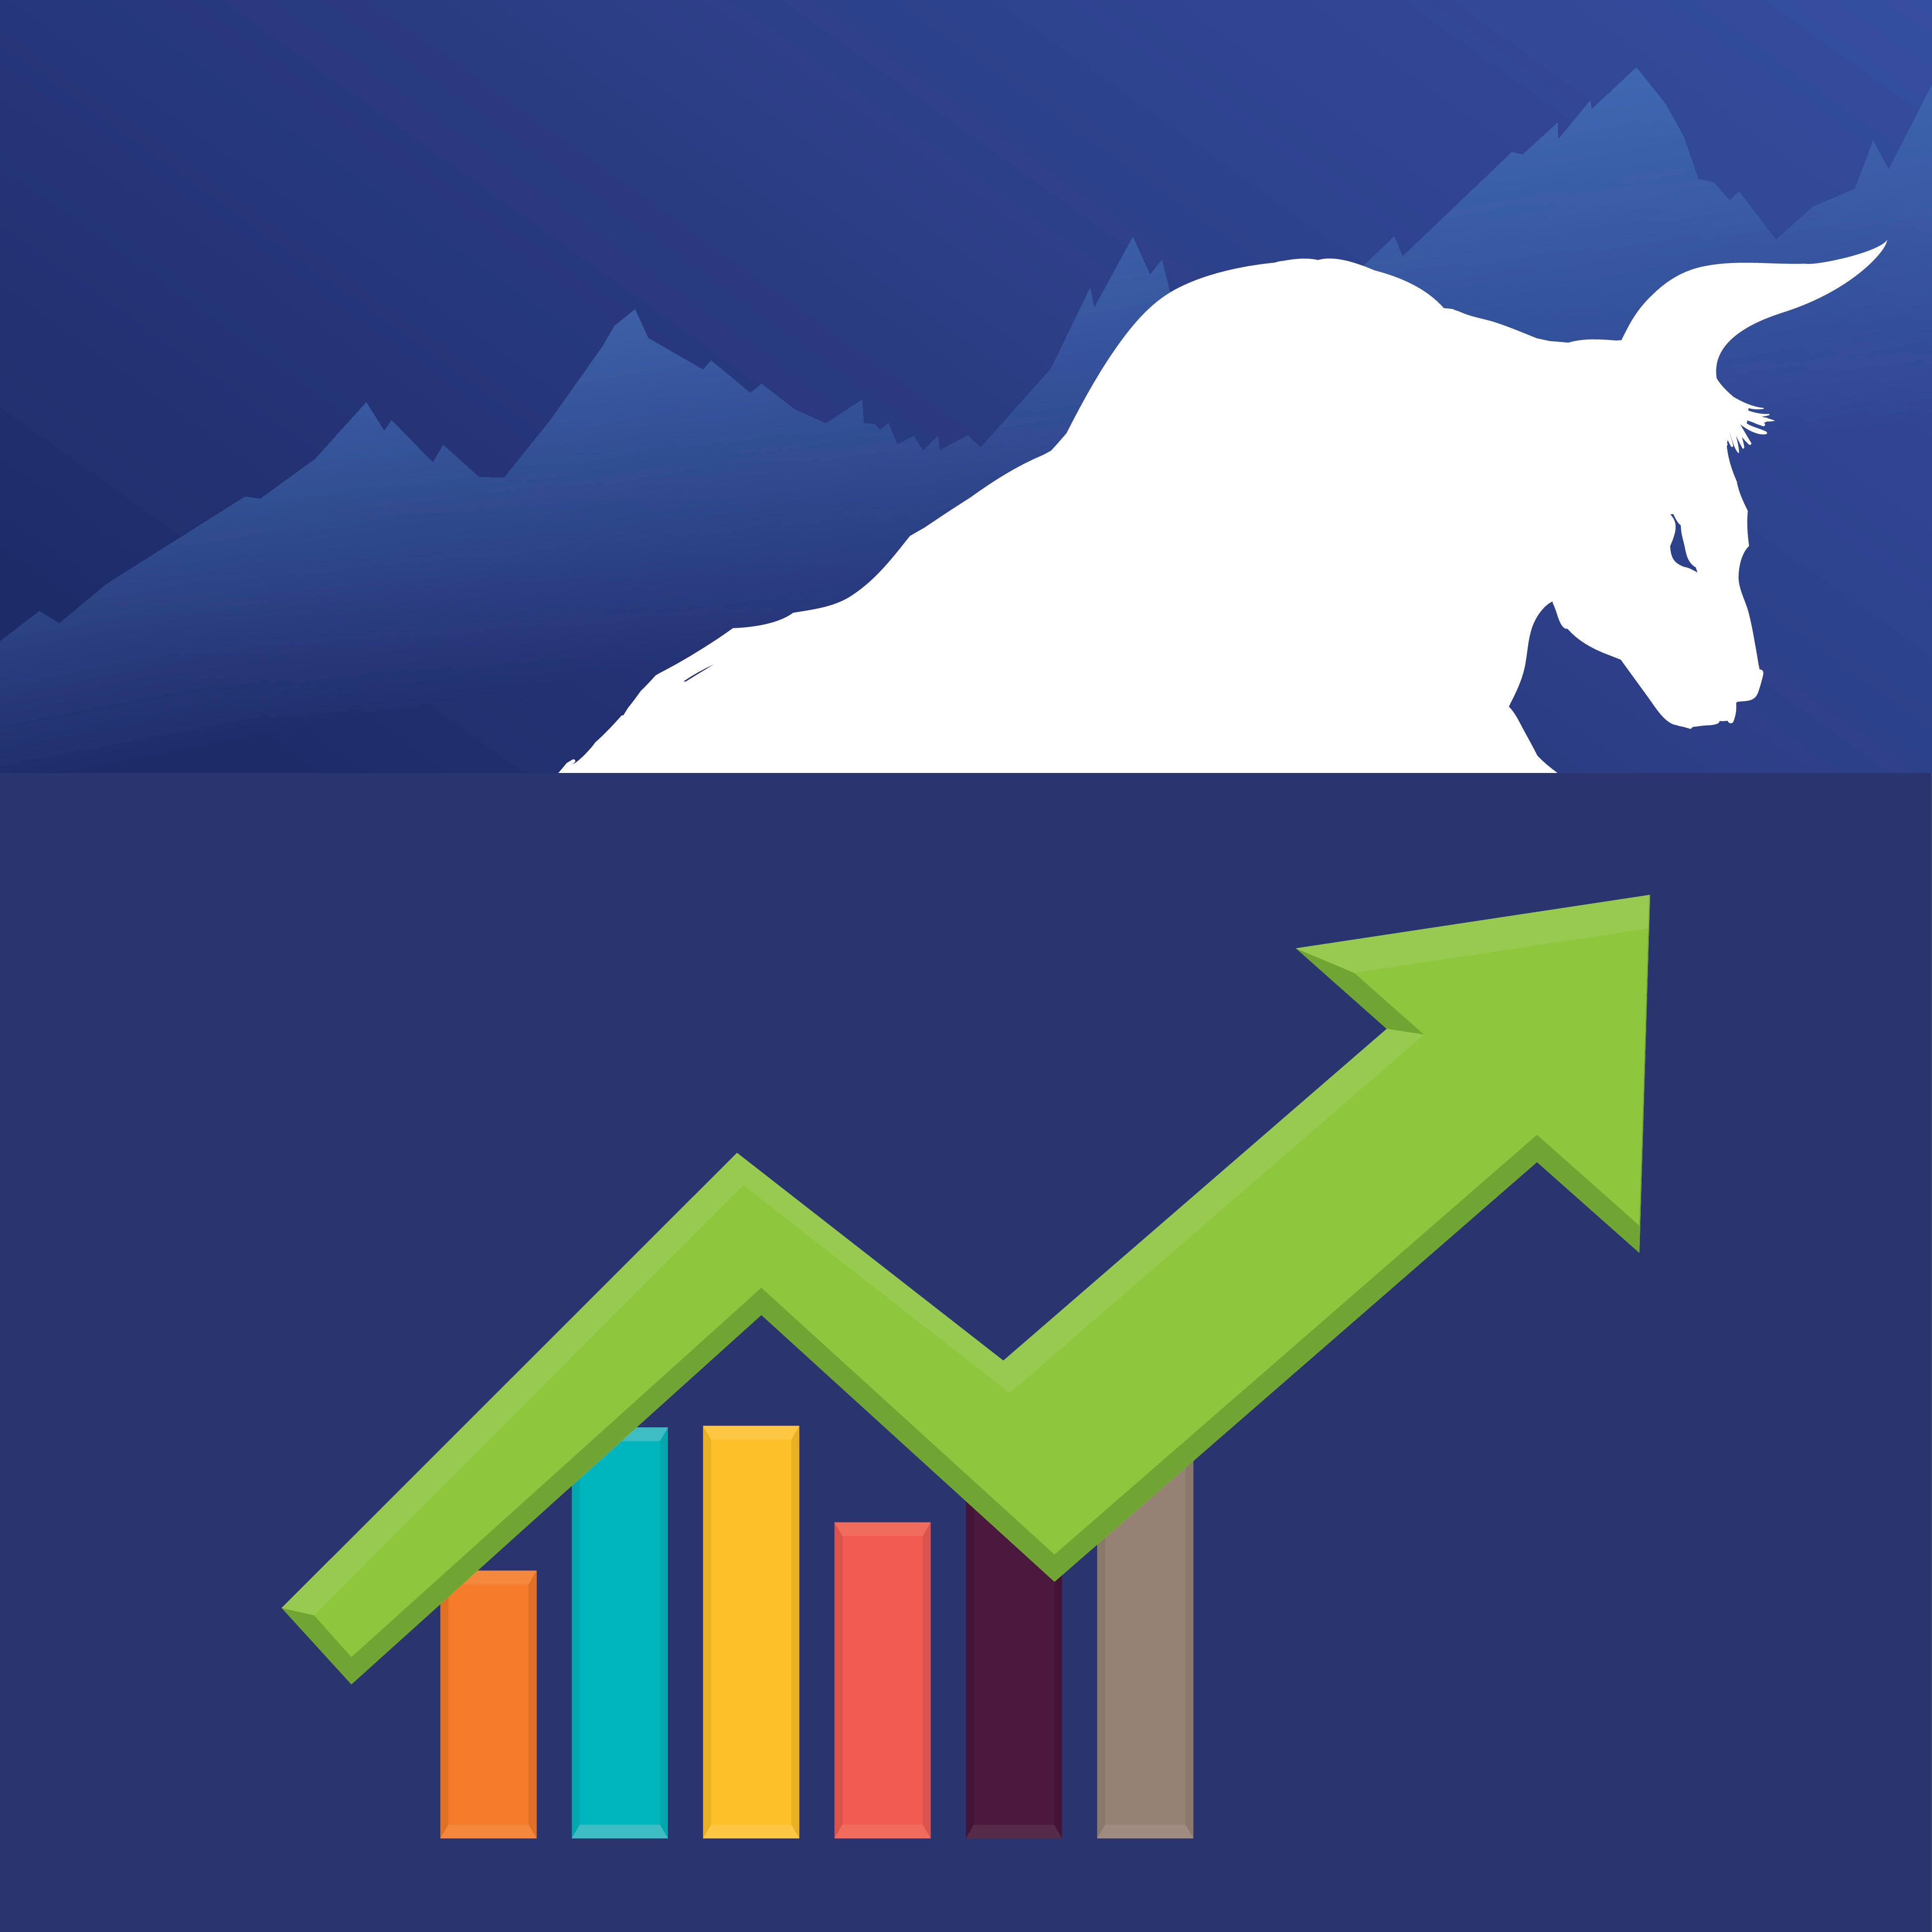 Micron Technology Stock Now Has a Stronger Bull Case